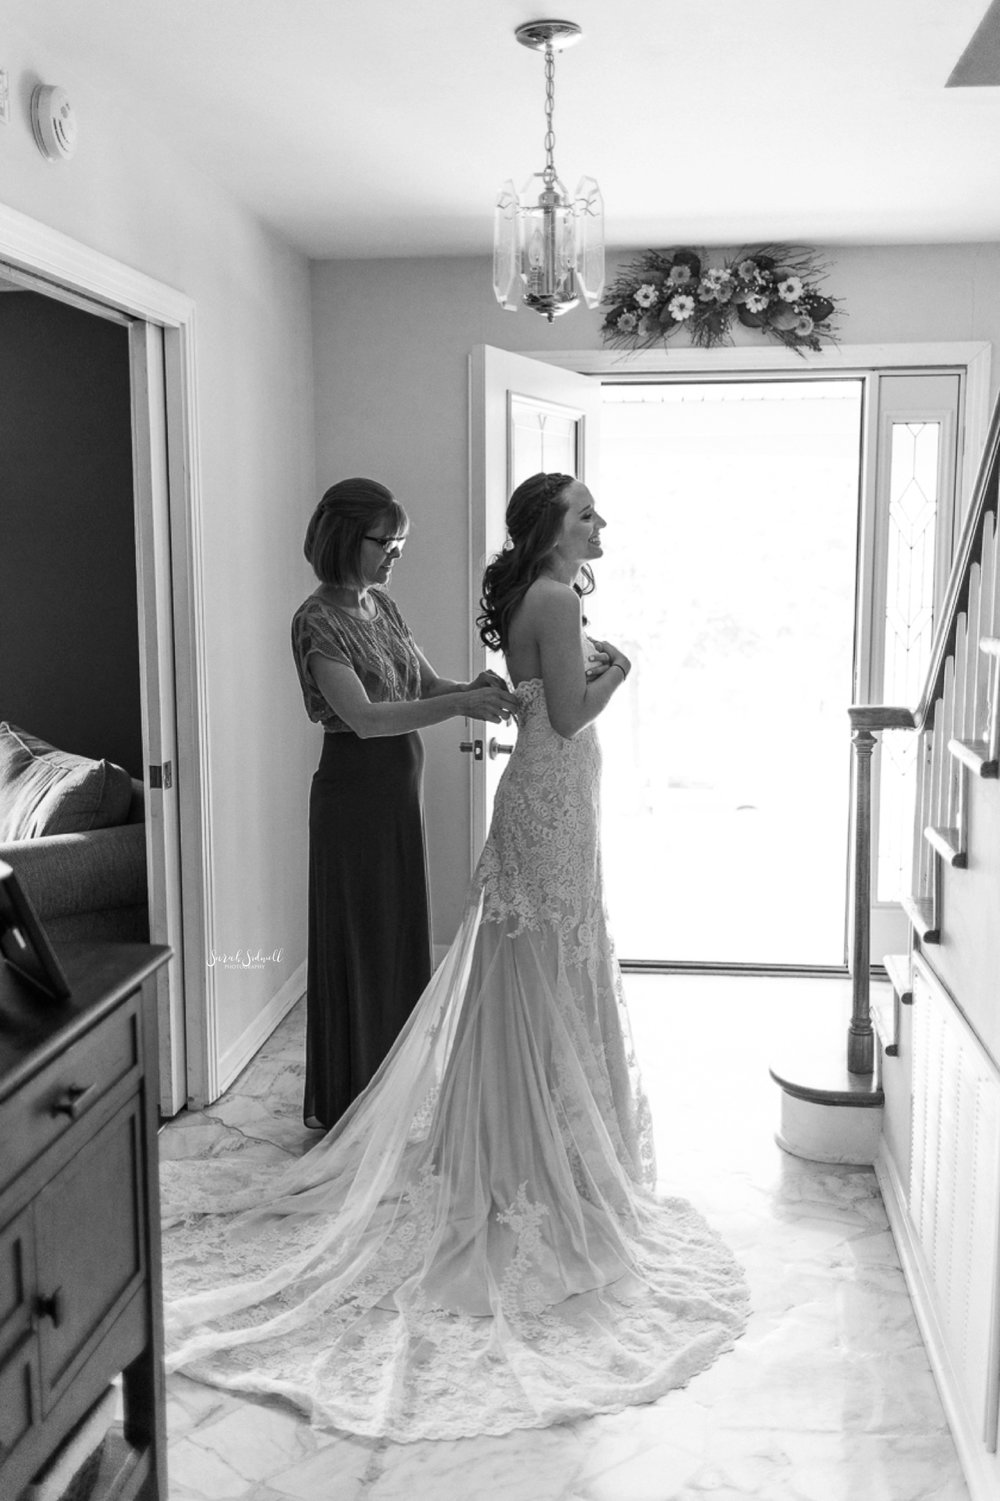 A bride gets into her dress for her wedding day.